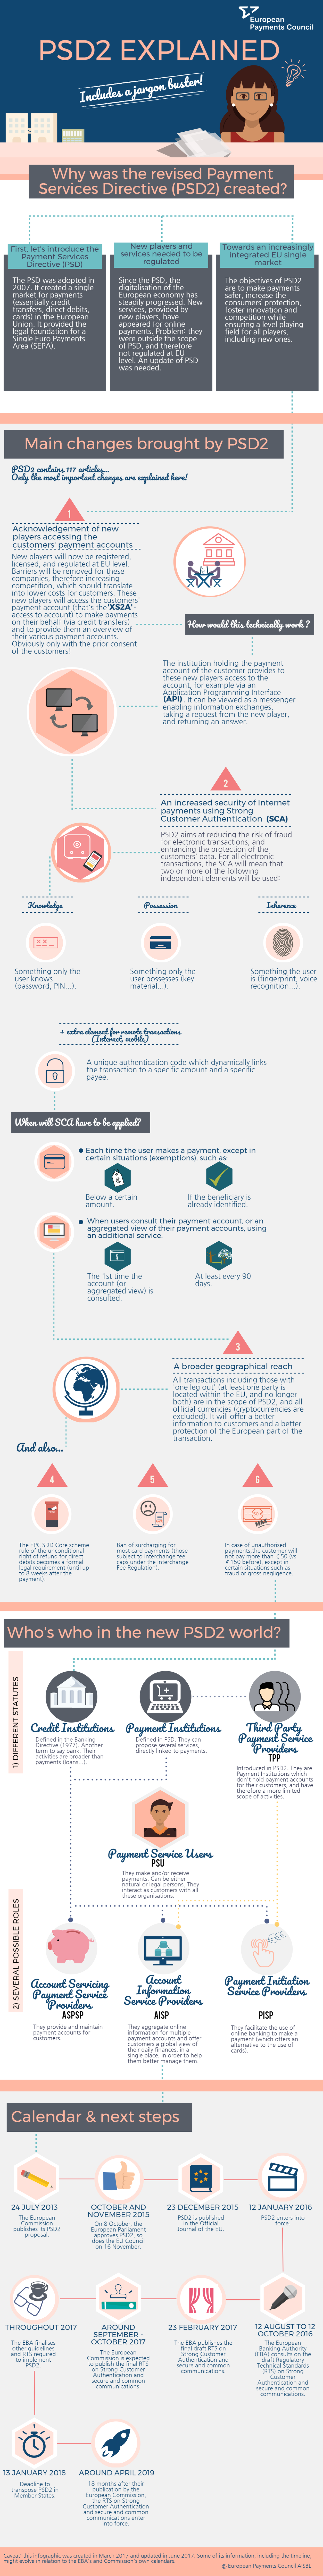 EPC infographic on PSD2